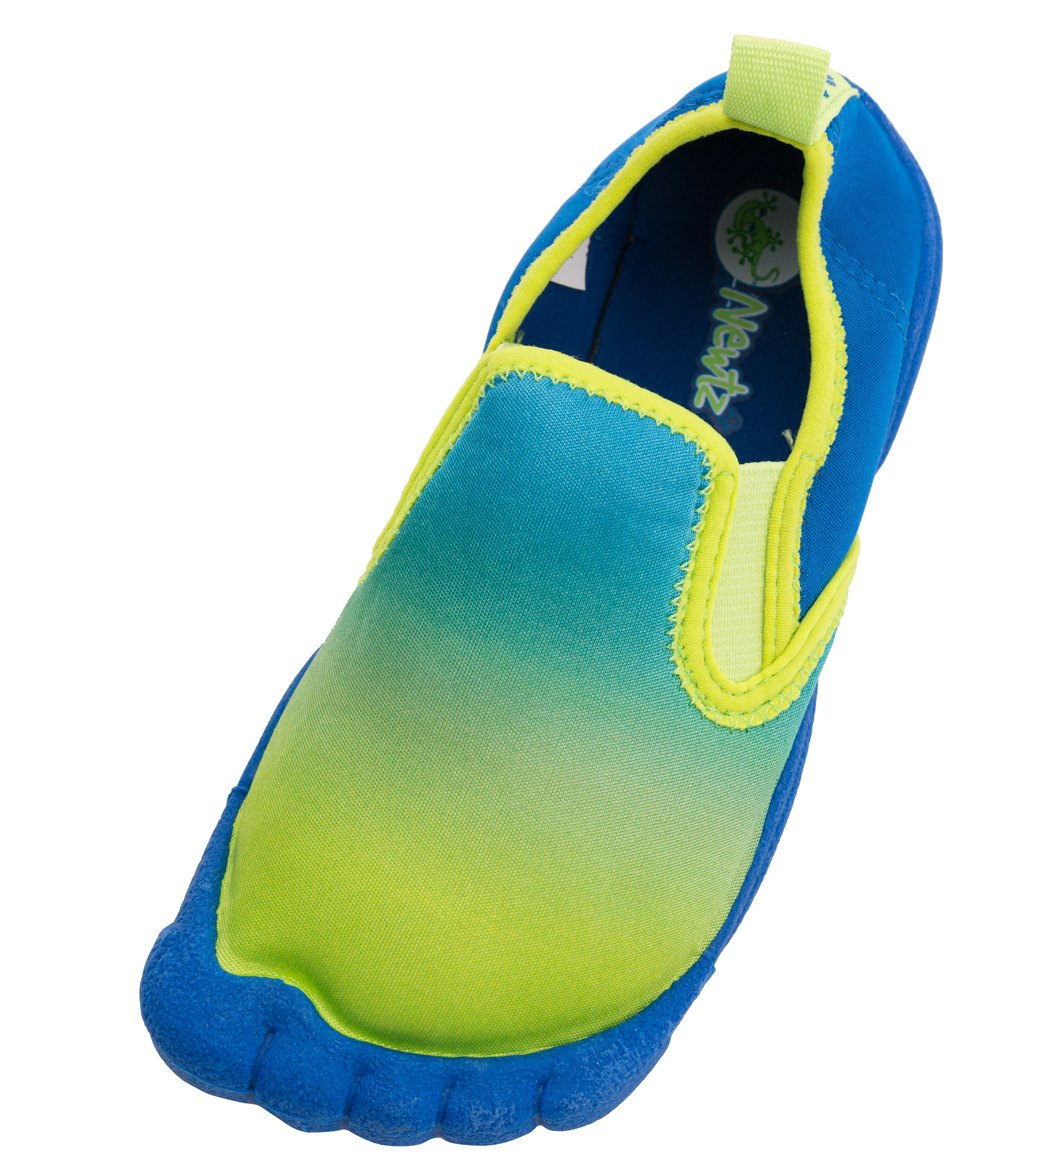 927a95b81 Newtz Boys  Twin Gore Transition Water Shoes at SwimOutlet.com